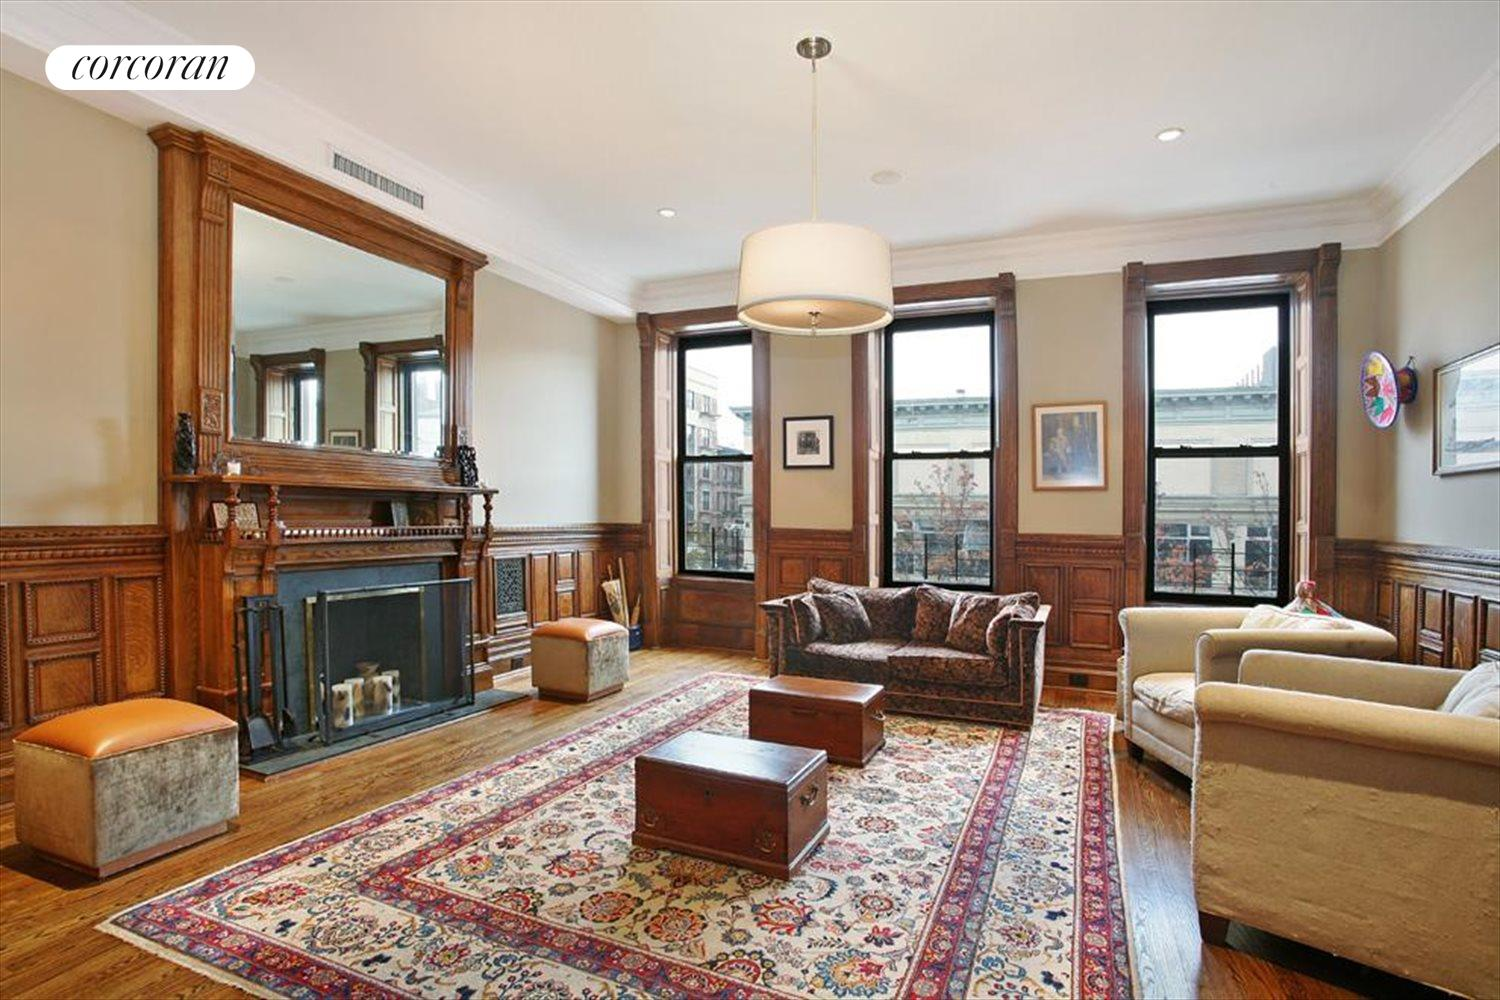 New York City Real Estate | View 2036 Fifth Avenue | 5 Beds, 5 Baths